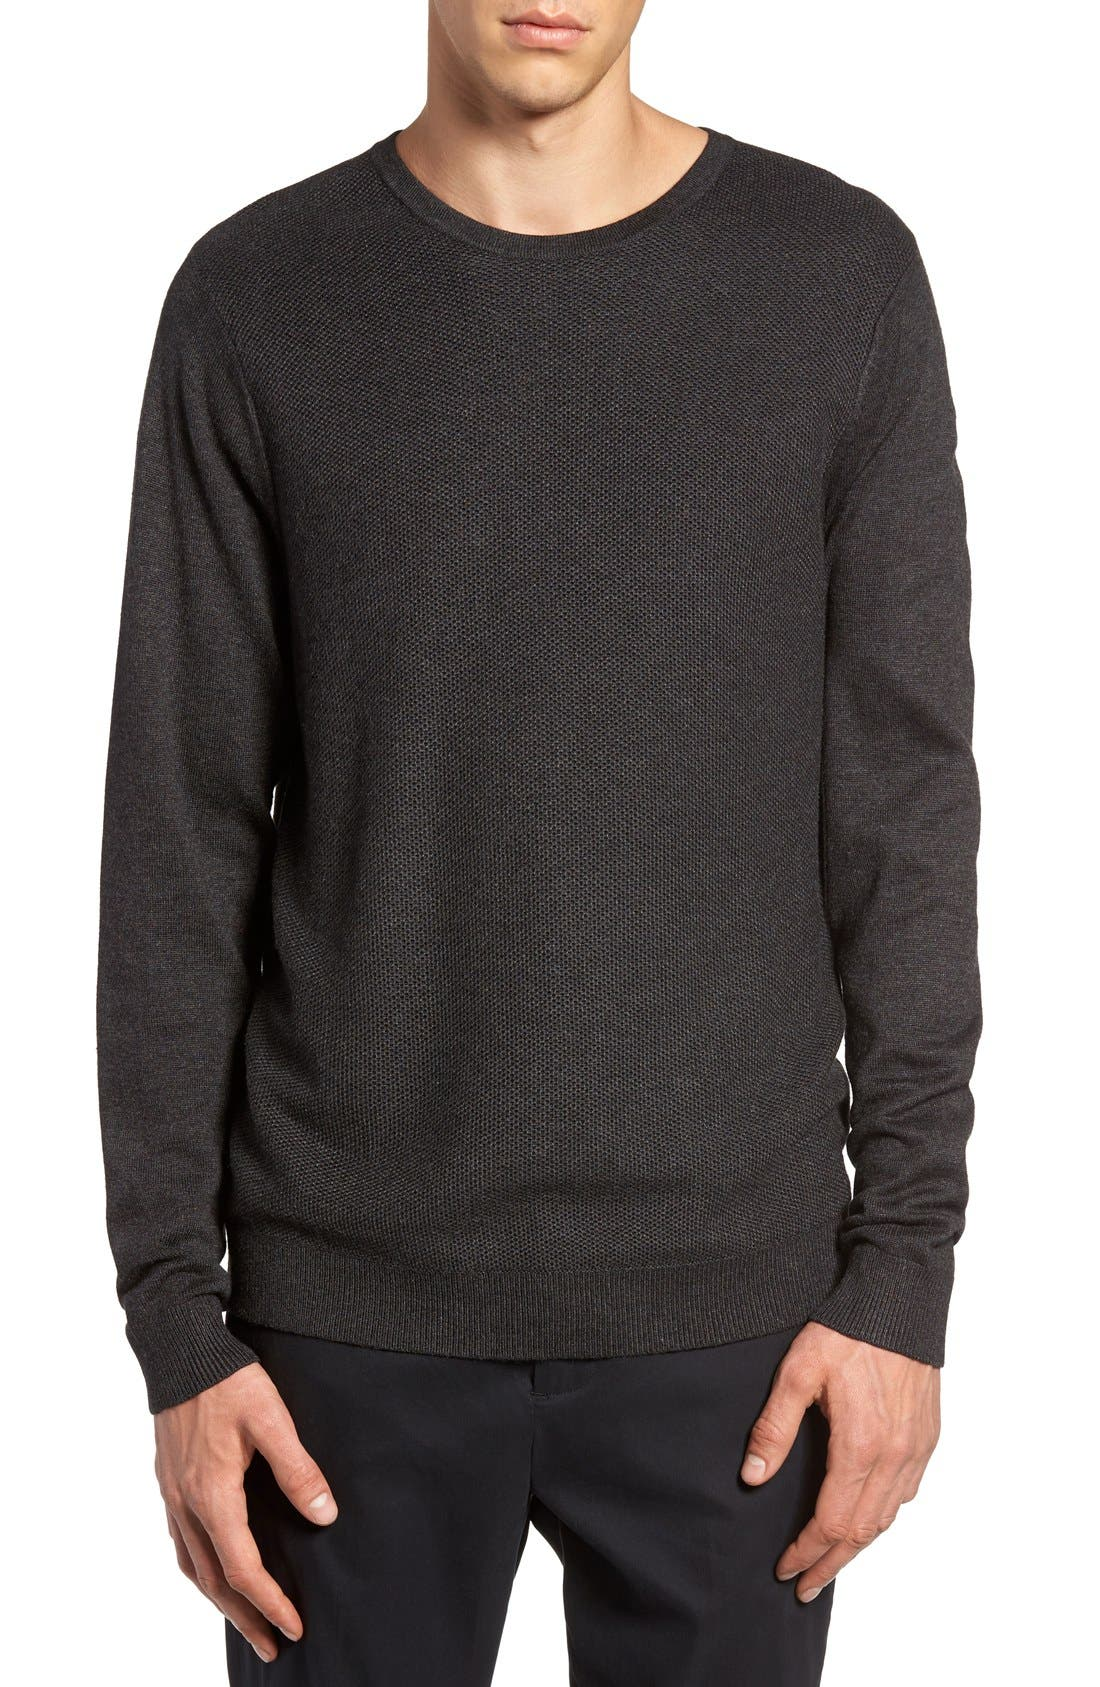 Men's Crewneck Sweaters | Nordstrom